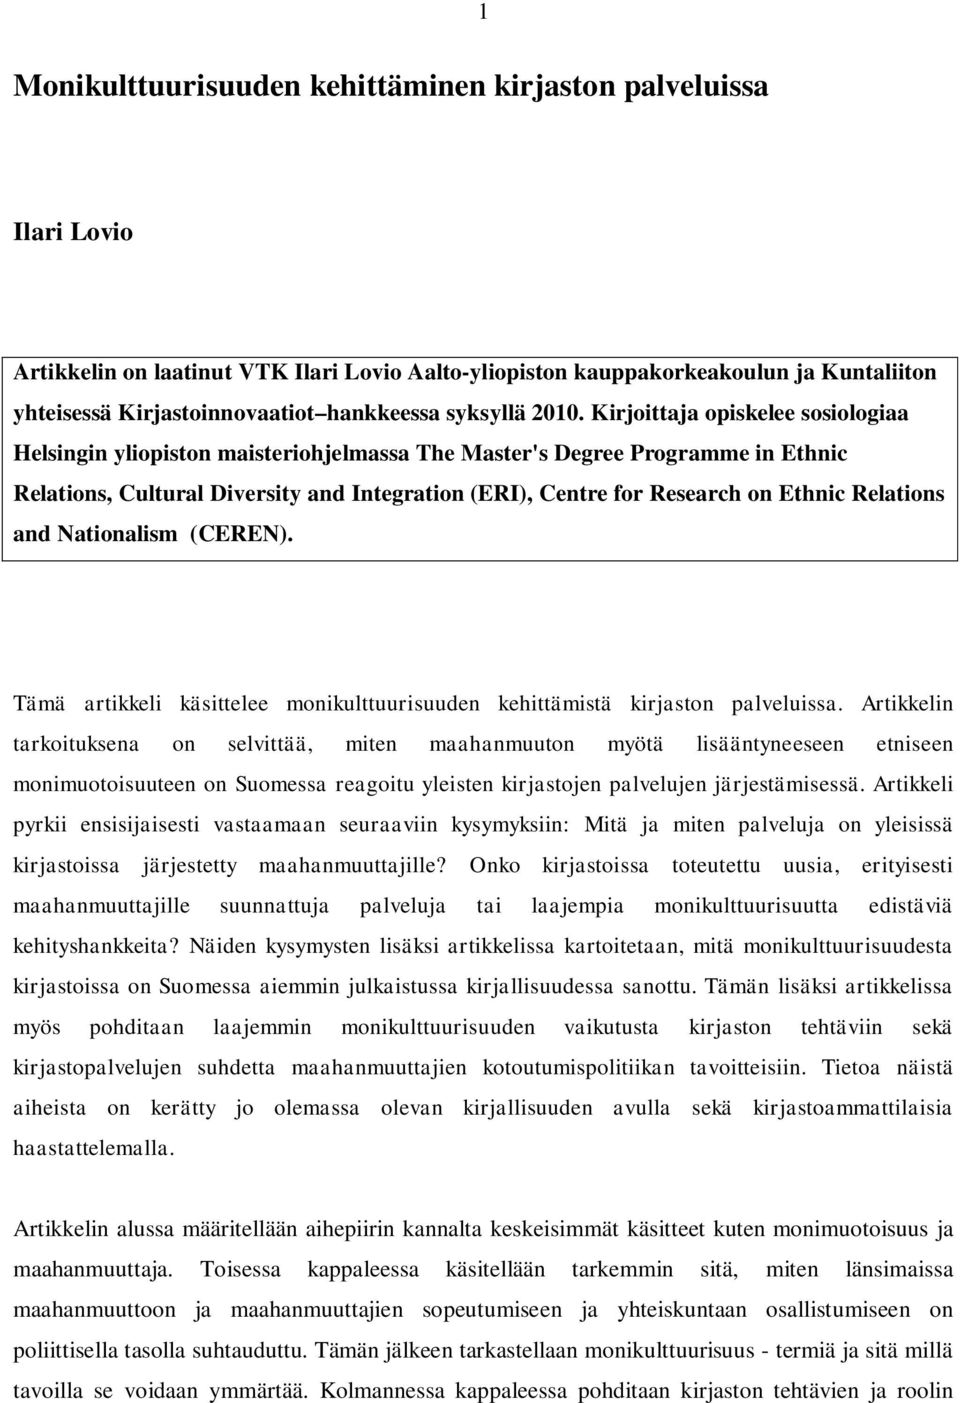 Kirjoittaja opiskelee sosiologiaa Helsingin yliopiston maisteriohjelmassa The Master's Degree Programme in Ethnic Relations, Cultural Diversity and Integration (ERI), Centre for Research on Ethnic